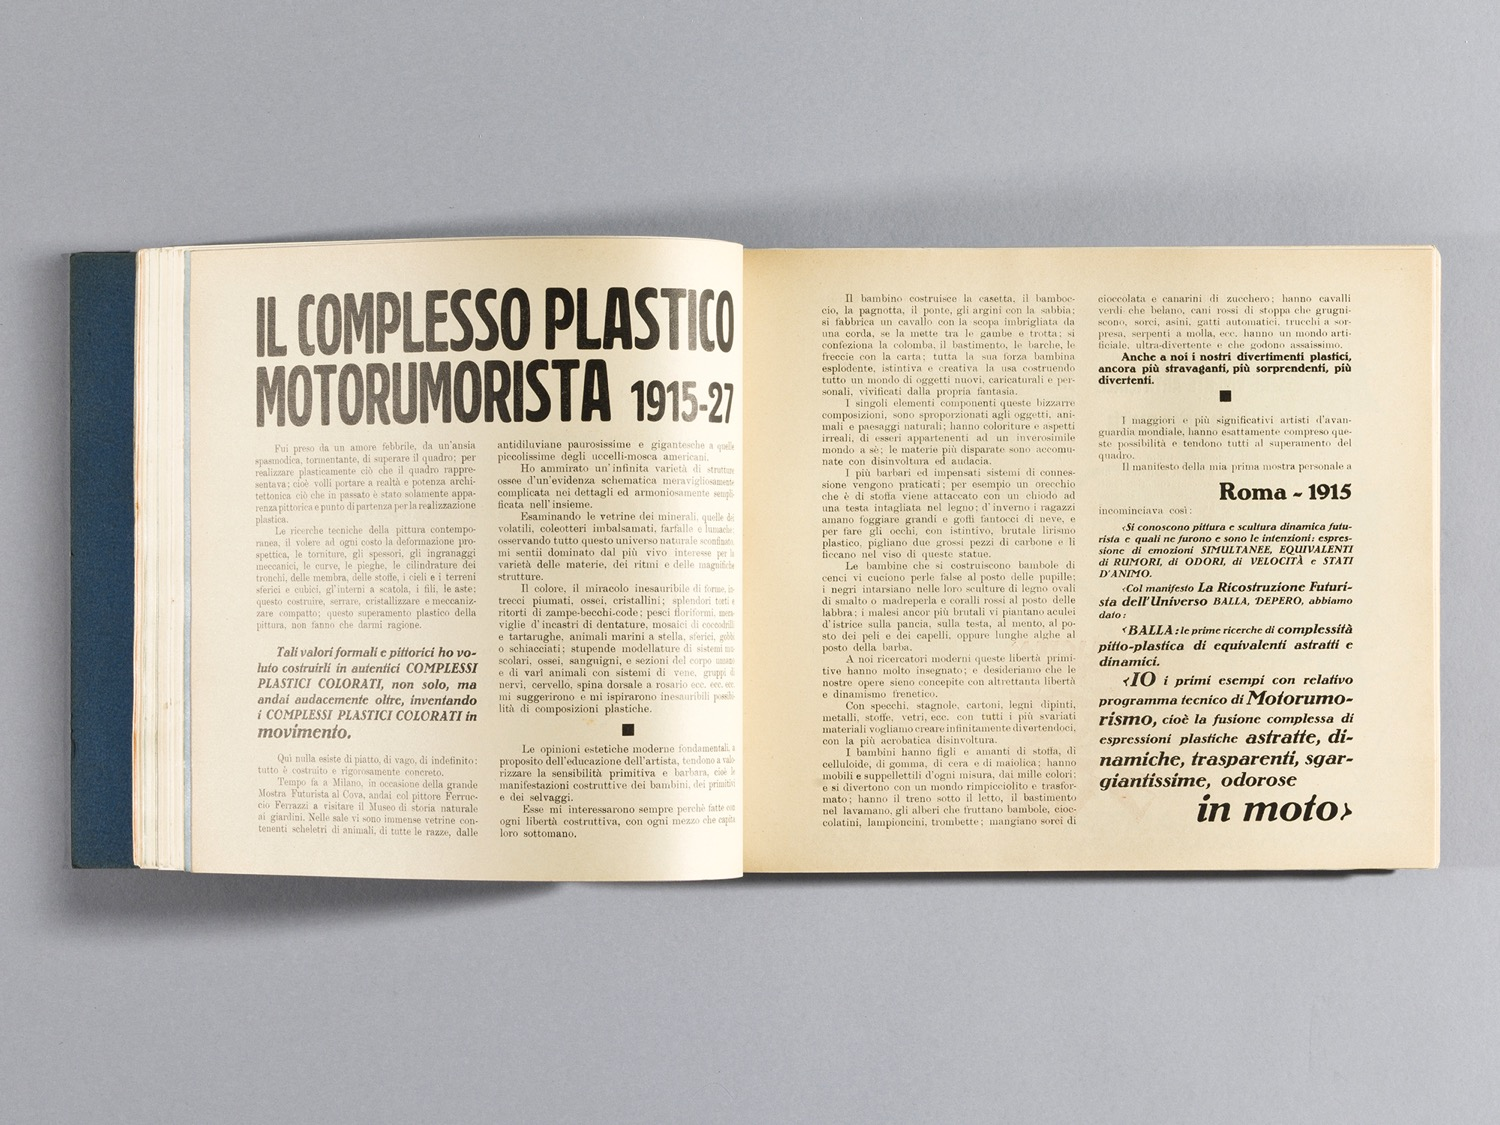 Depero Bolted Book 62